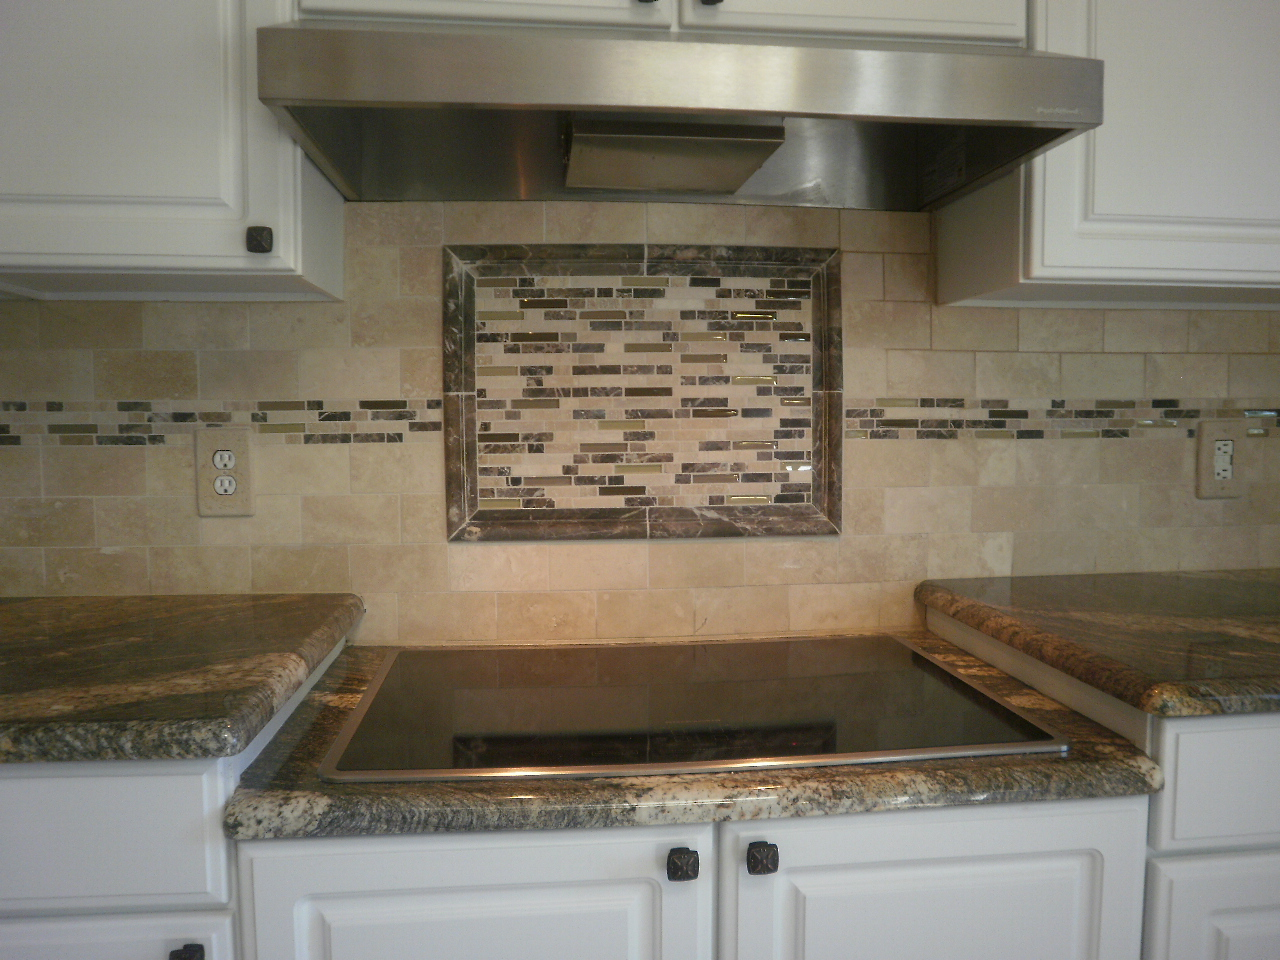 Kitchen backsplash ideas glass tile afreakatheart Tile backsplash ideas for kitchen